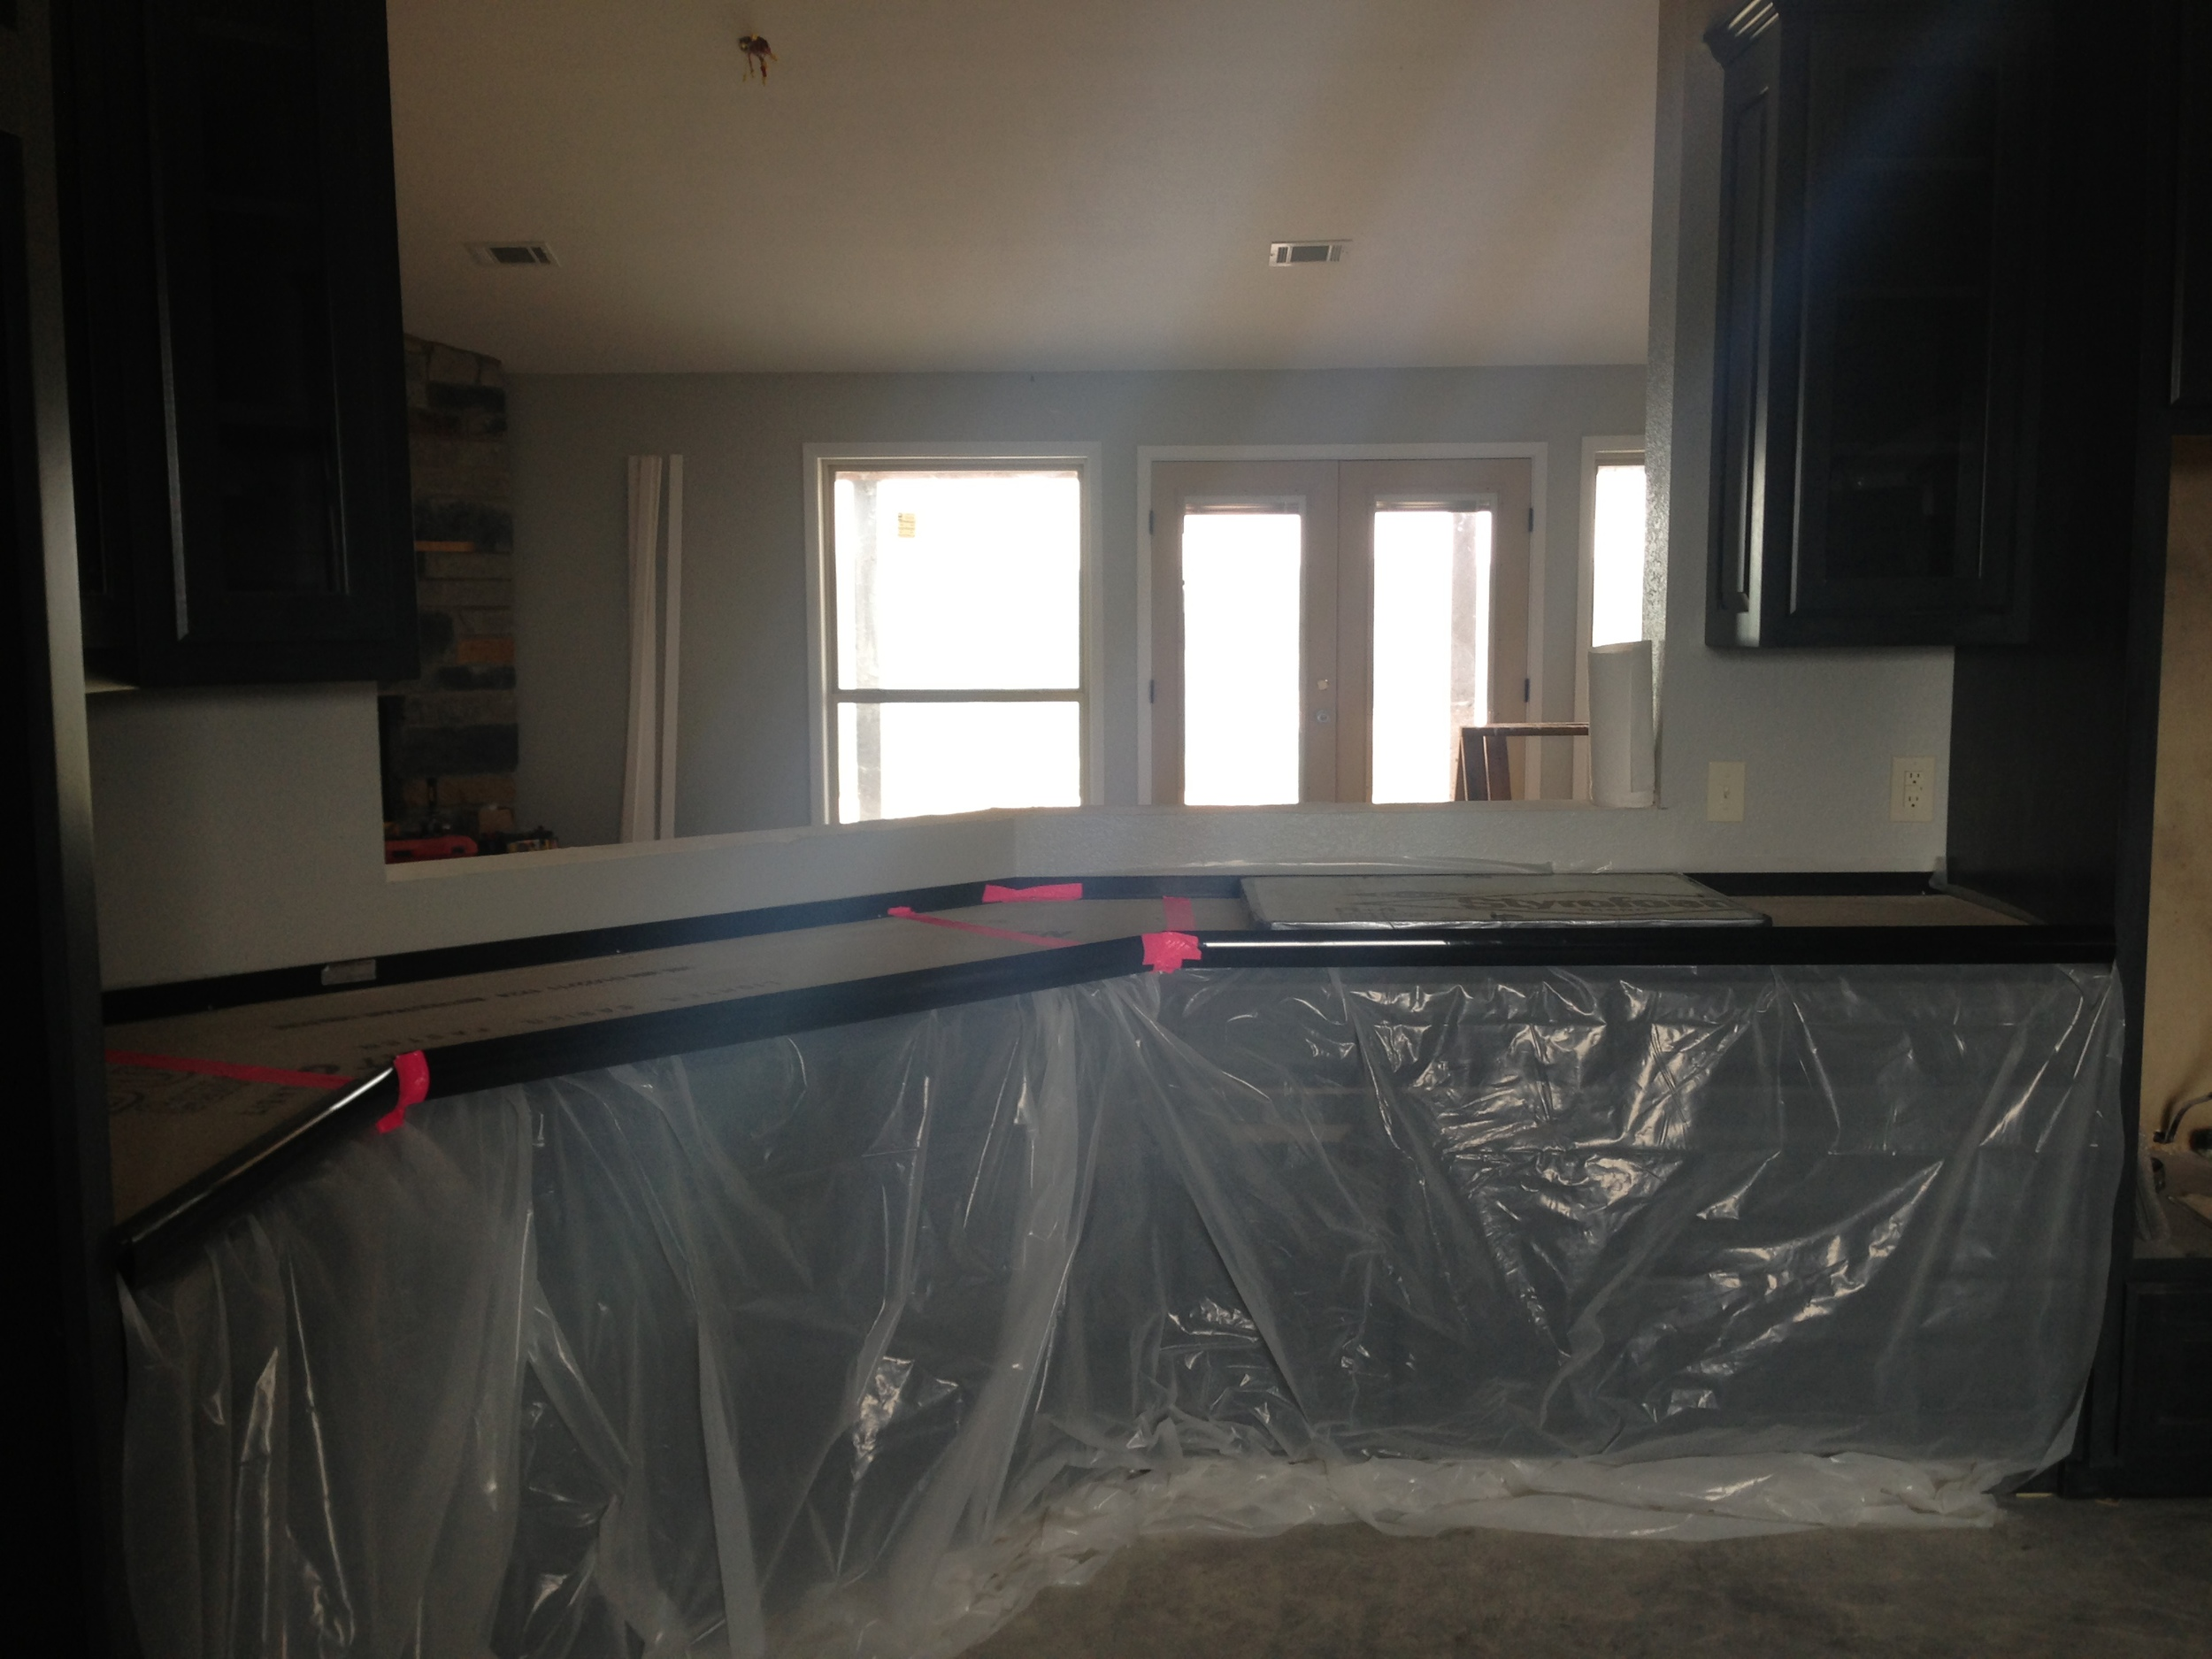 Preparing to pour the kitchen counters. After a number of test pours we finally committed!